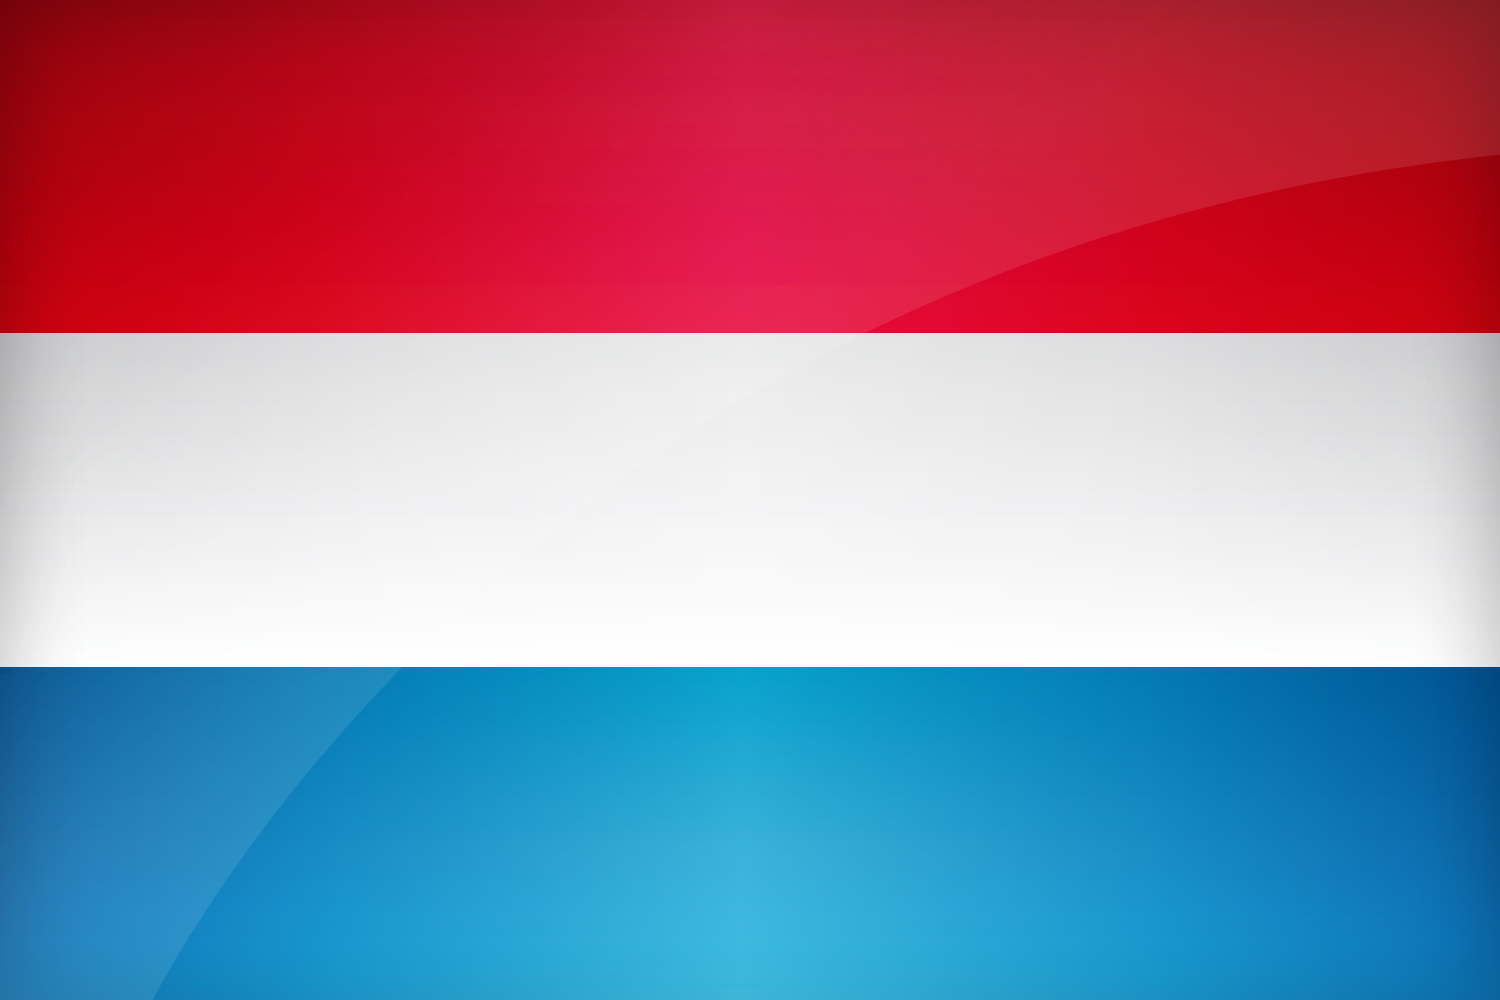 Flag of Luxembourg Find the best design for Luxembourgers Flag 1500x1000